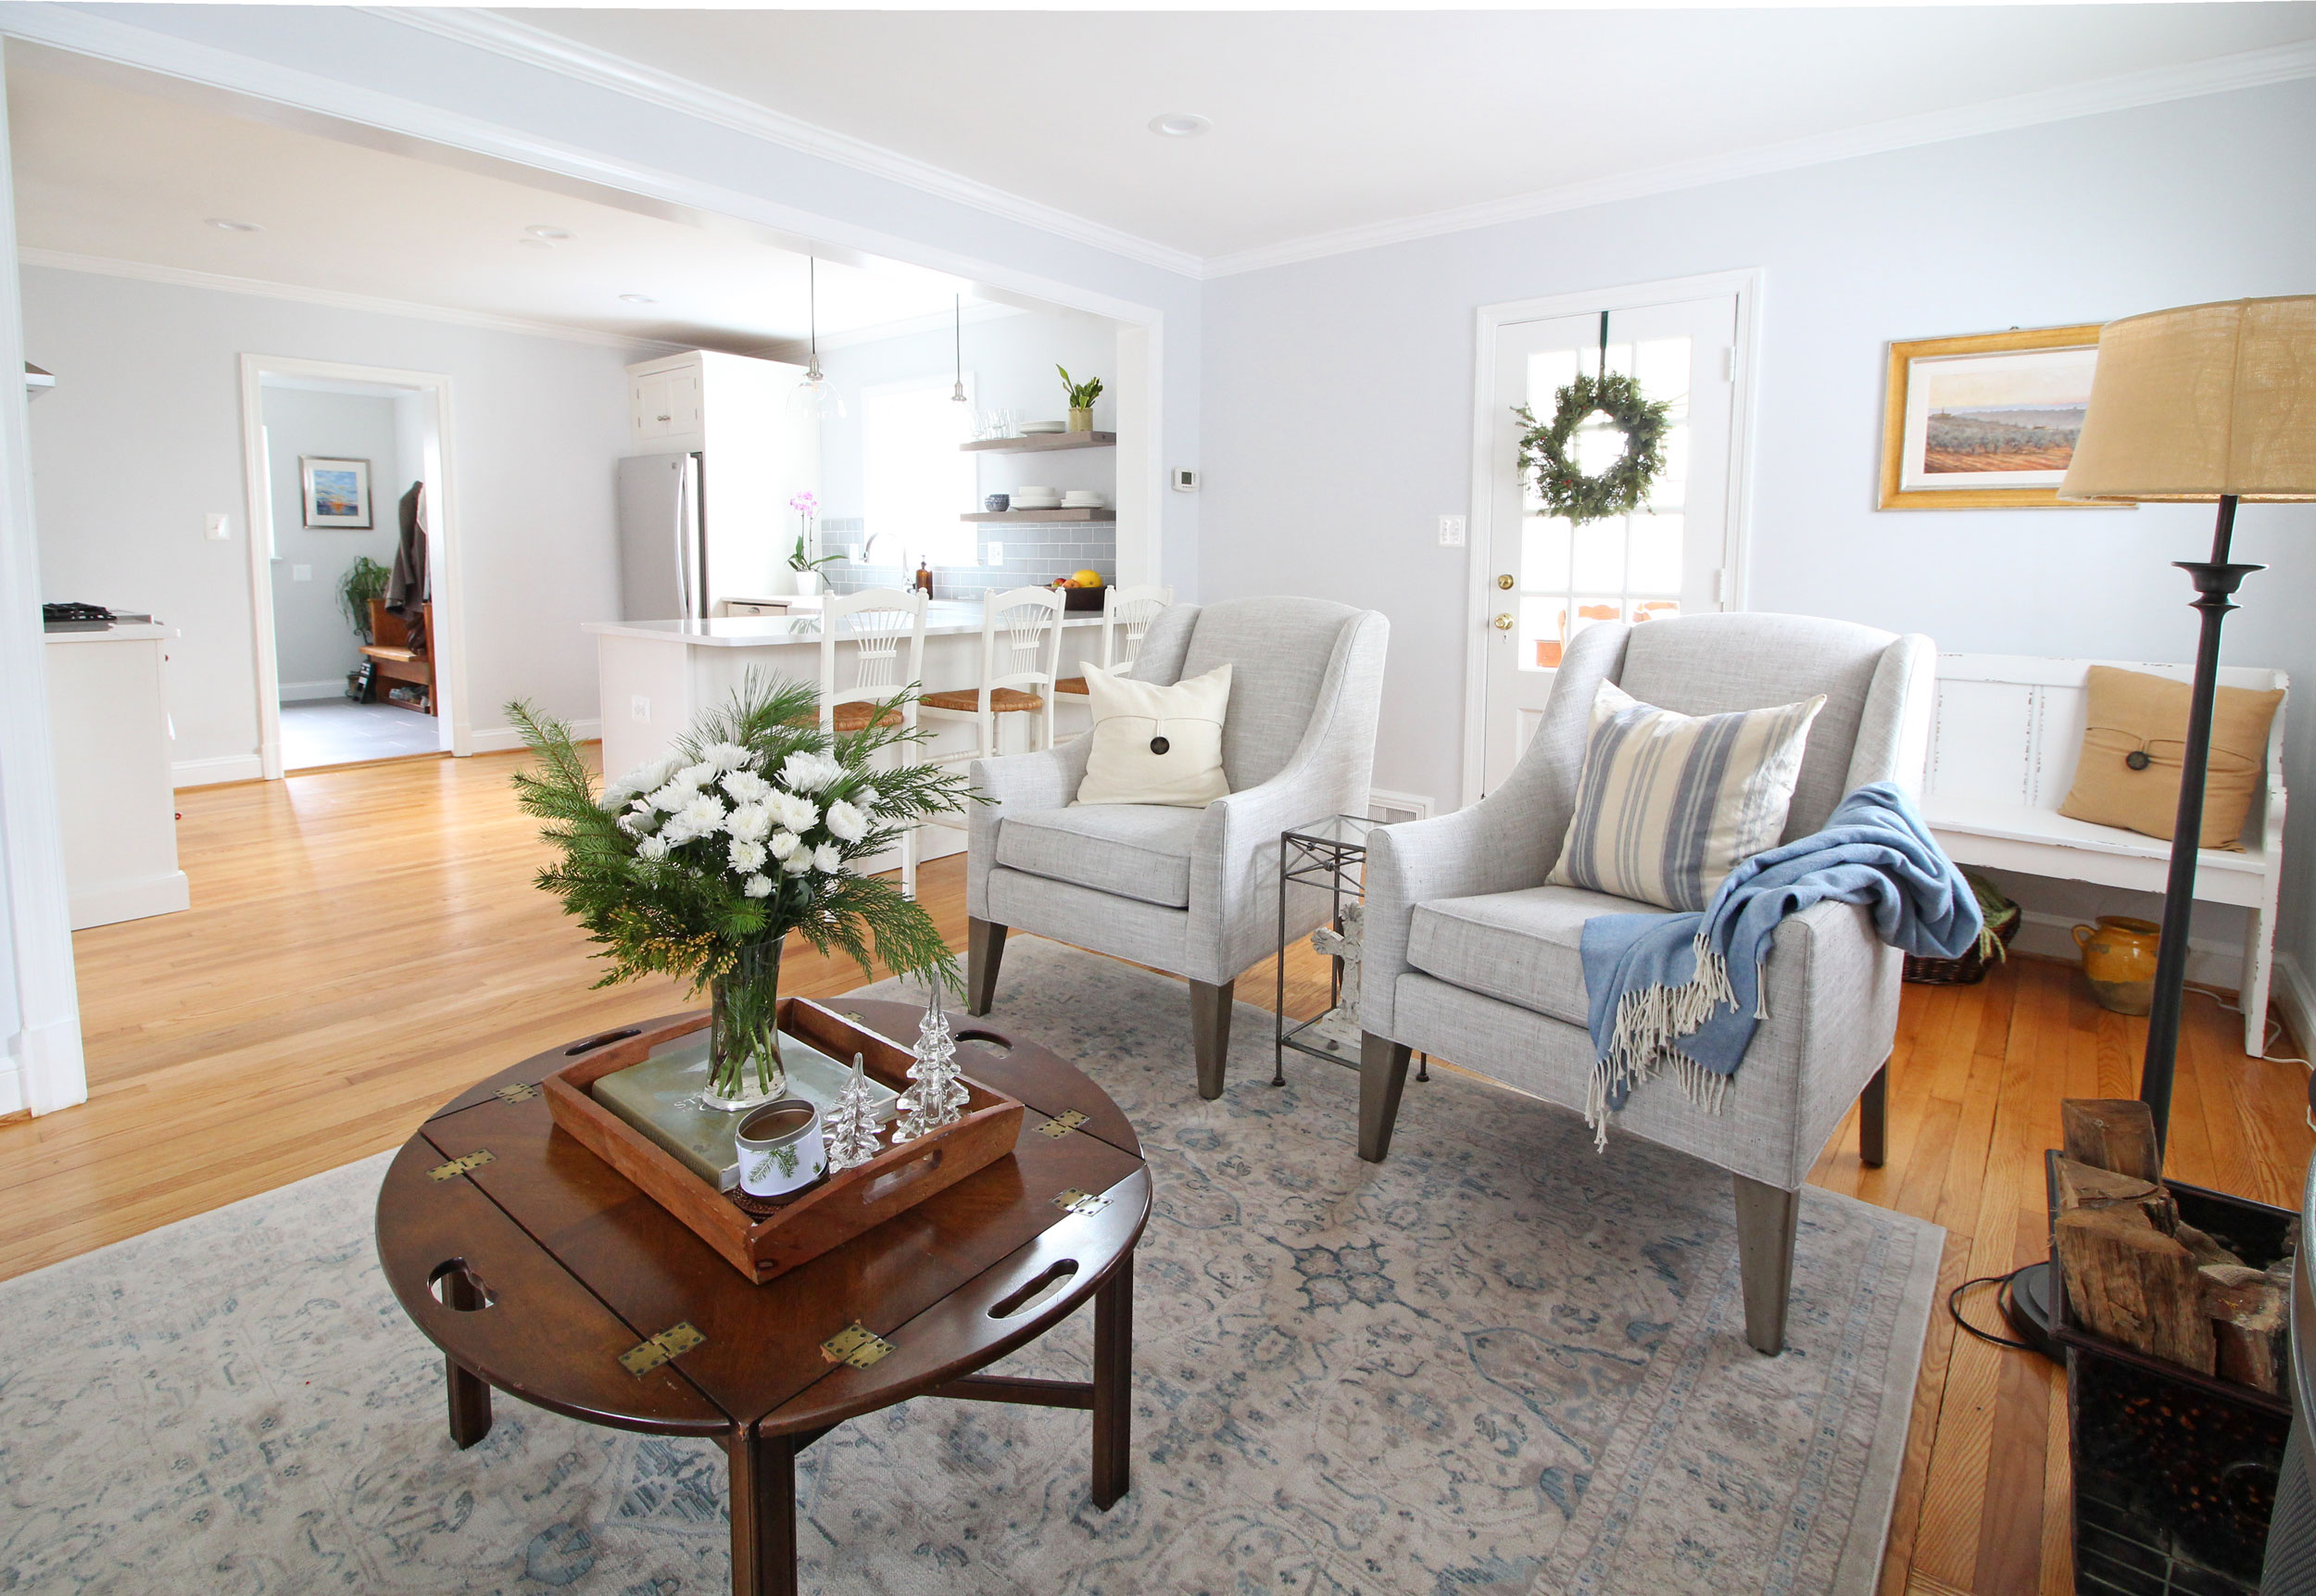 A bright and airy transitional farmhouse living room that opens up into the white kitchen.